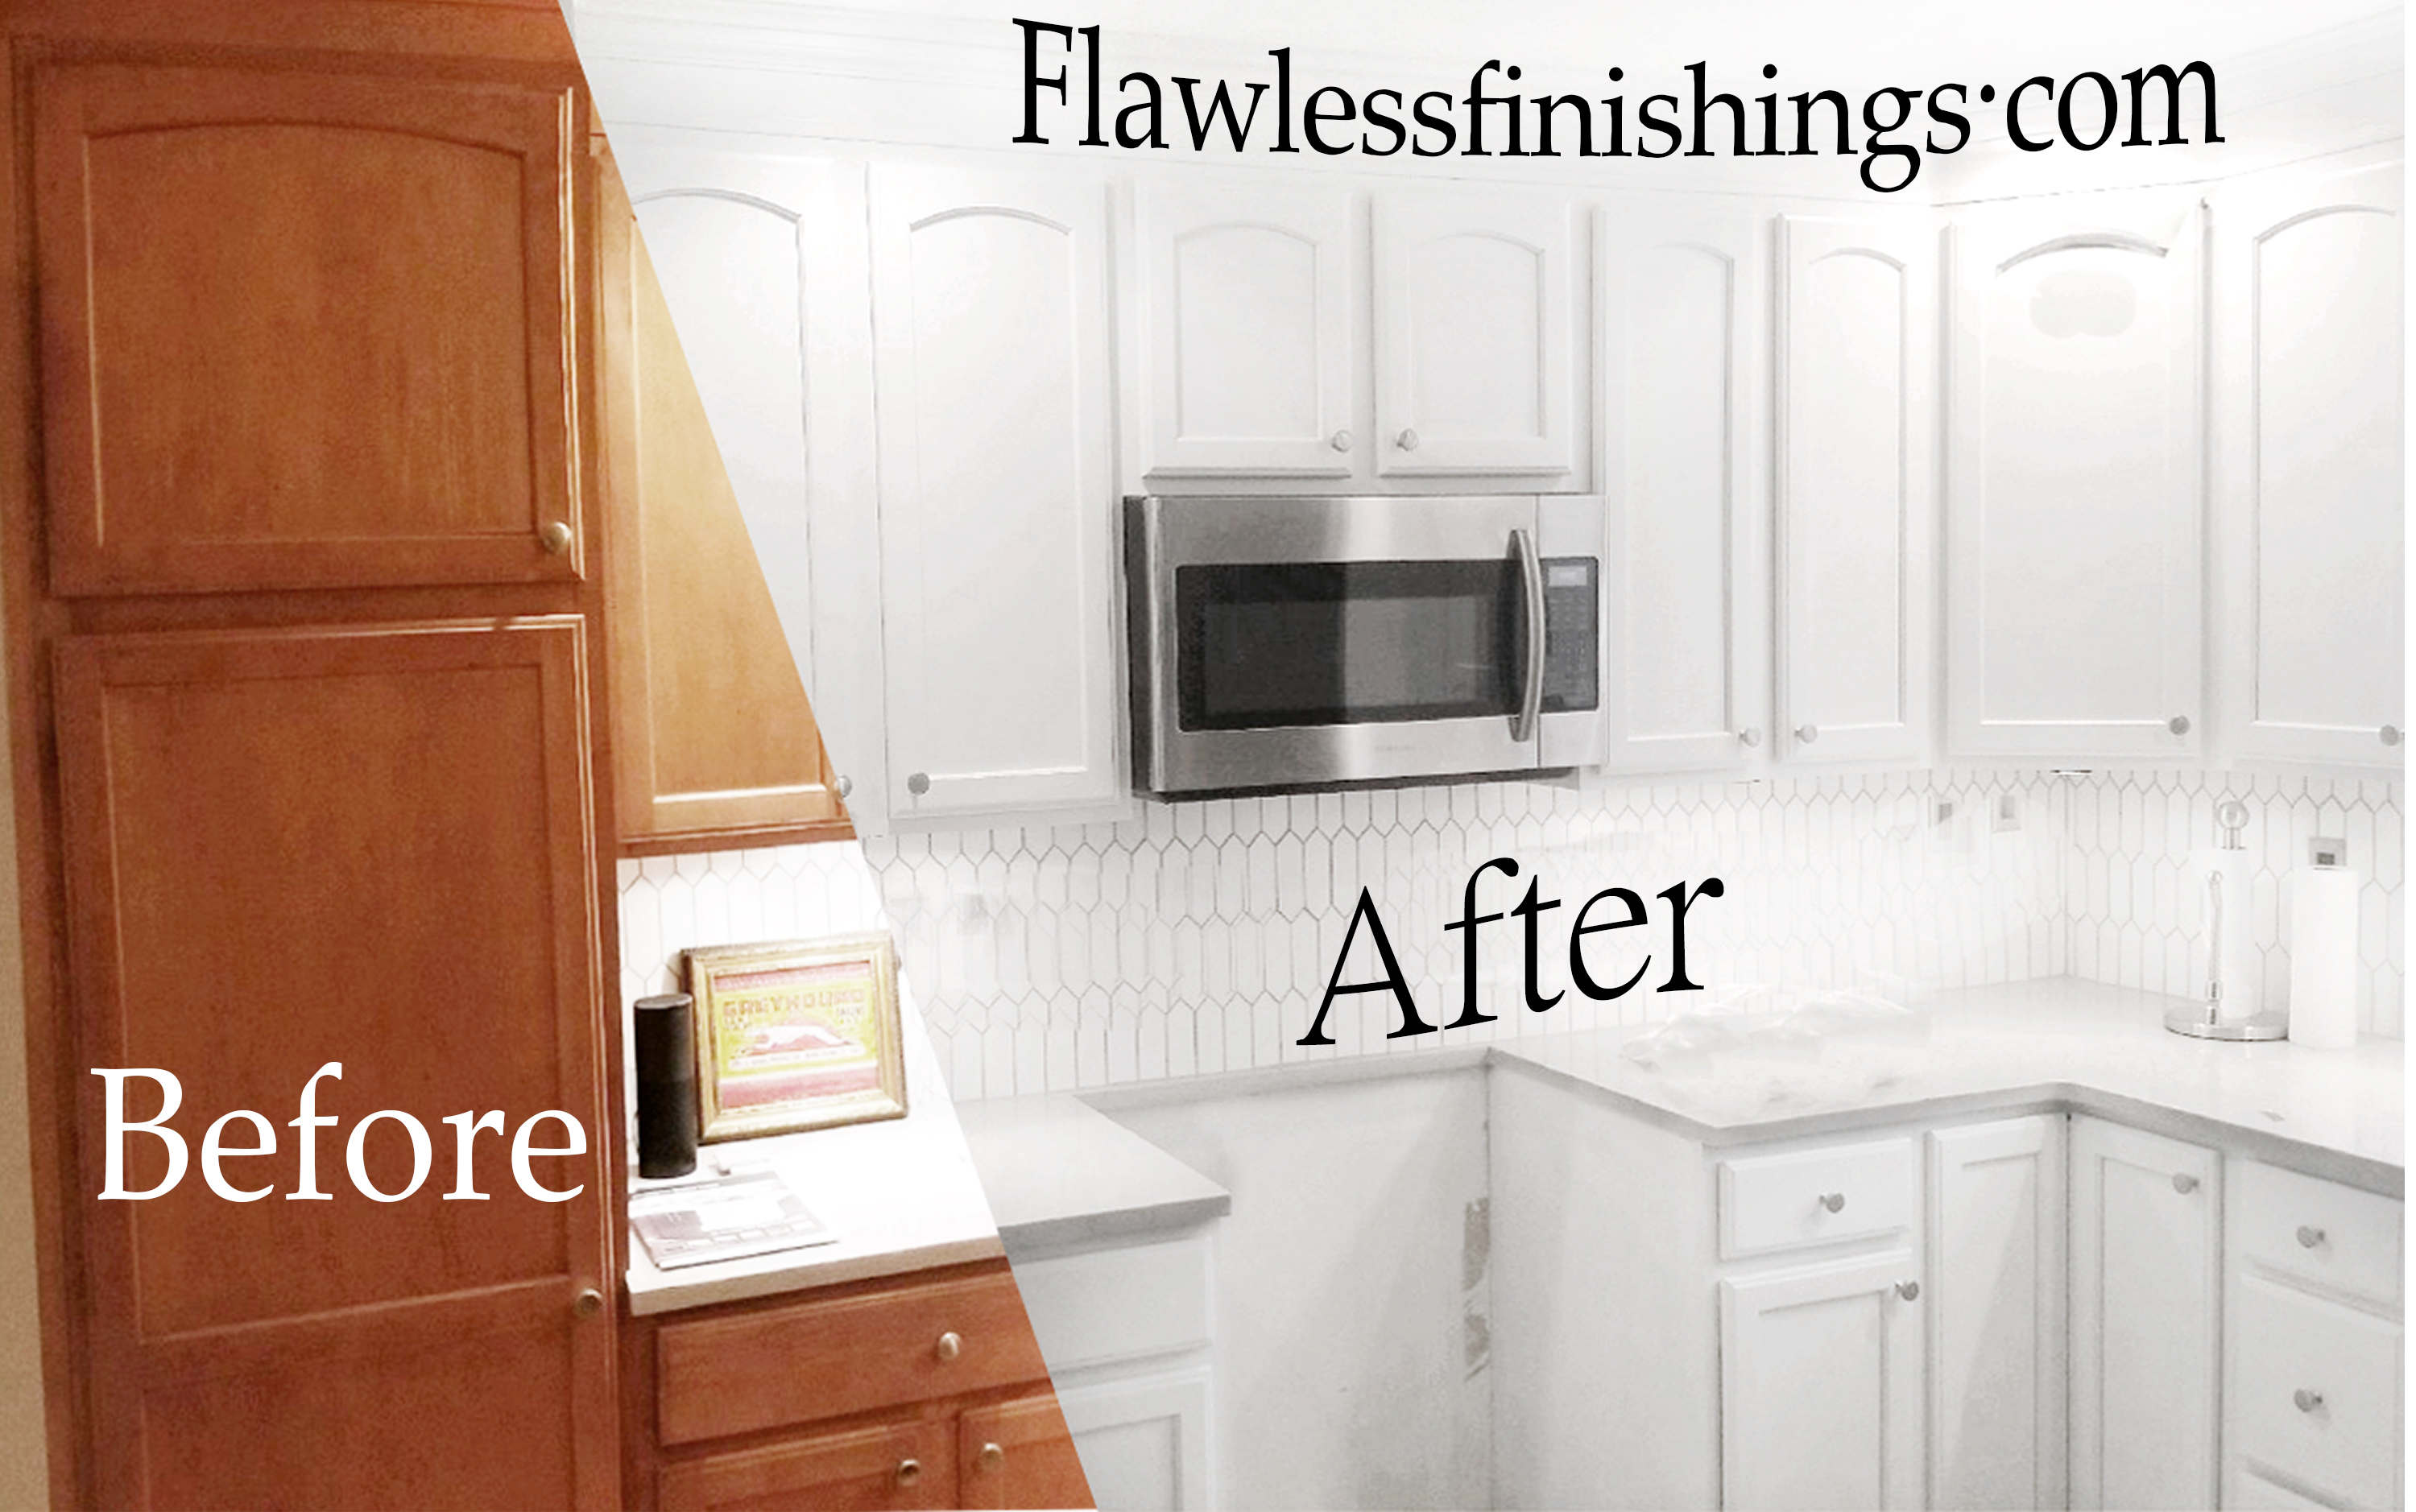 Refinishing Kitchen Cabinets Kitchen Remodeling Professionals Flawless Finishes